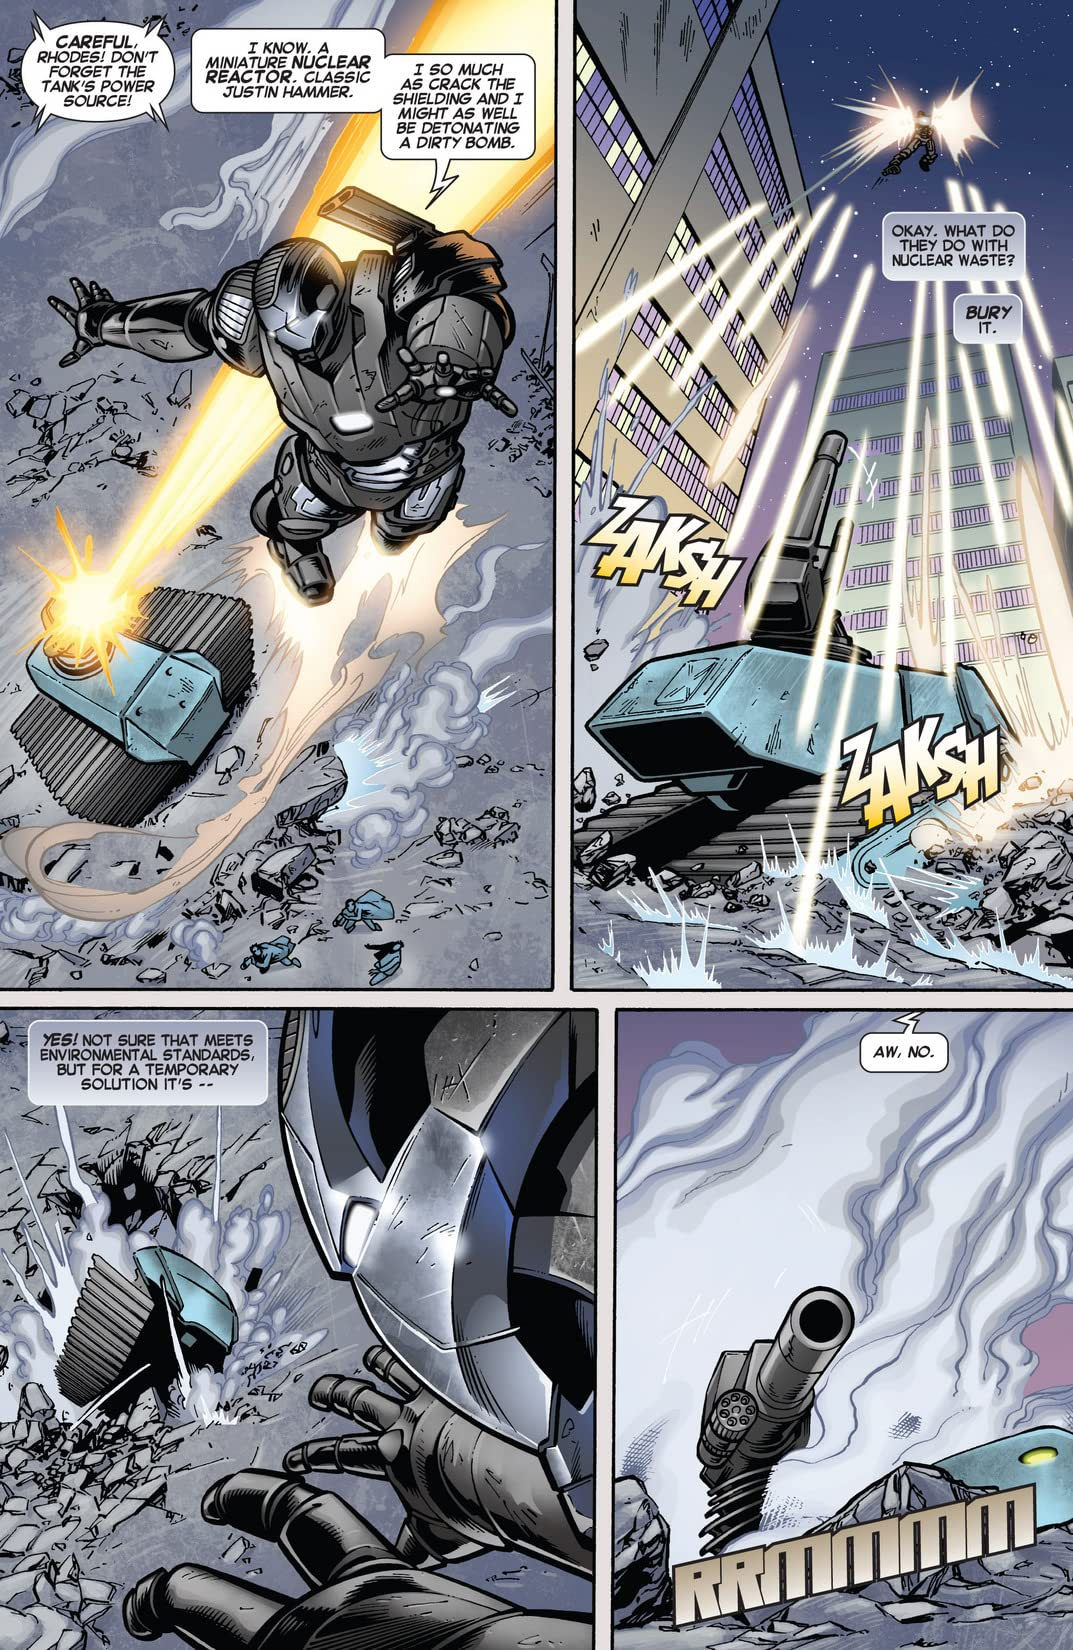 Marvel's Iron Man 3 Prelude #2 (of 2)